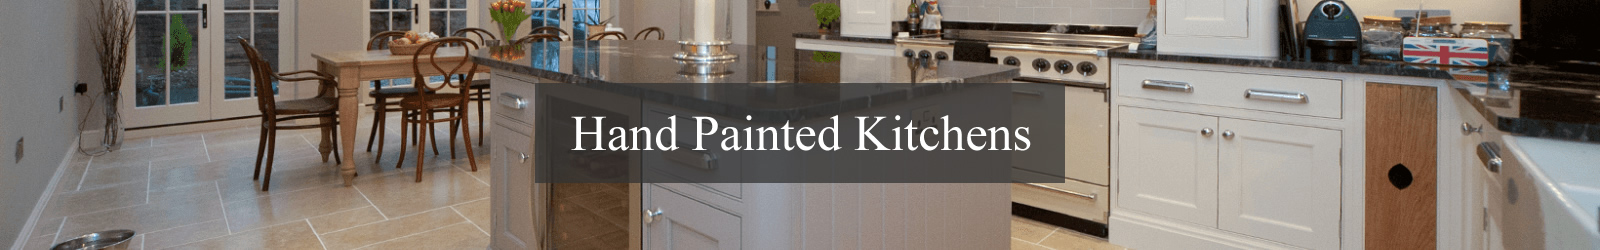 Hand Painted Kitchens - Cheshire